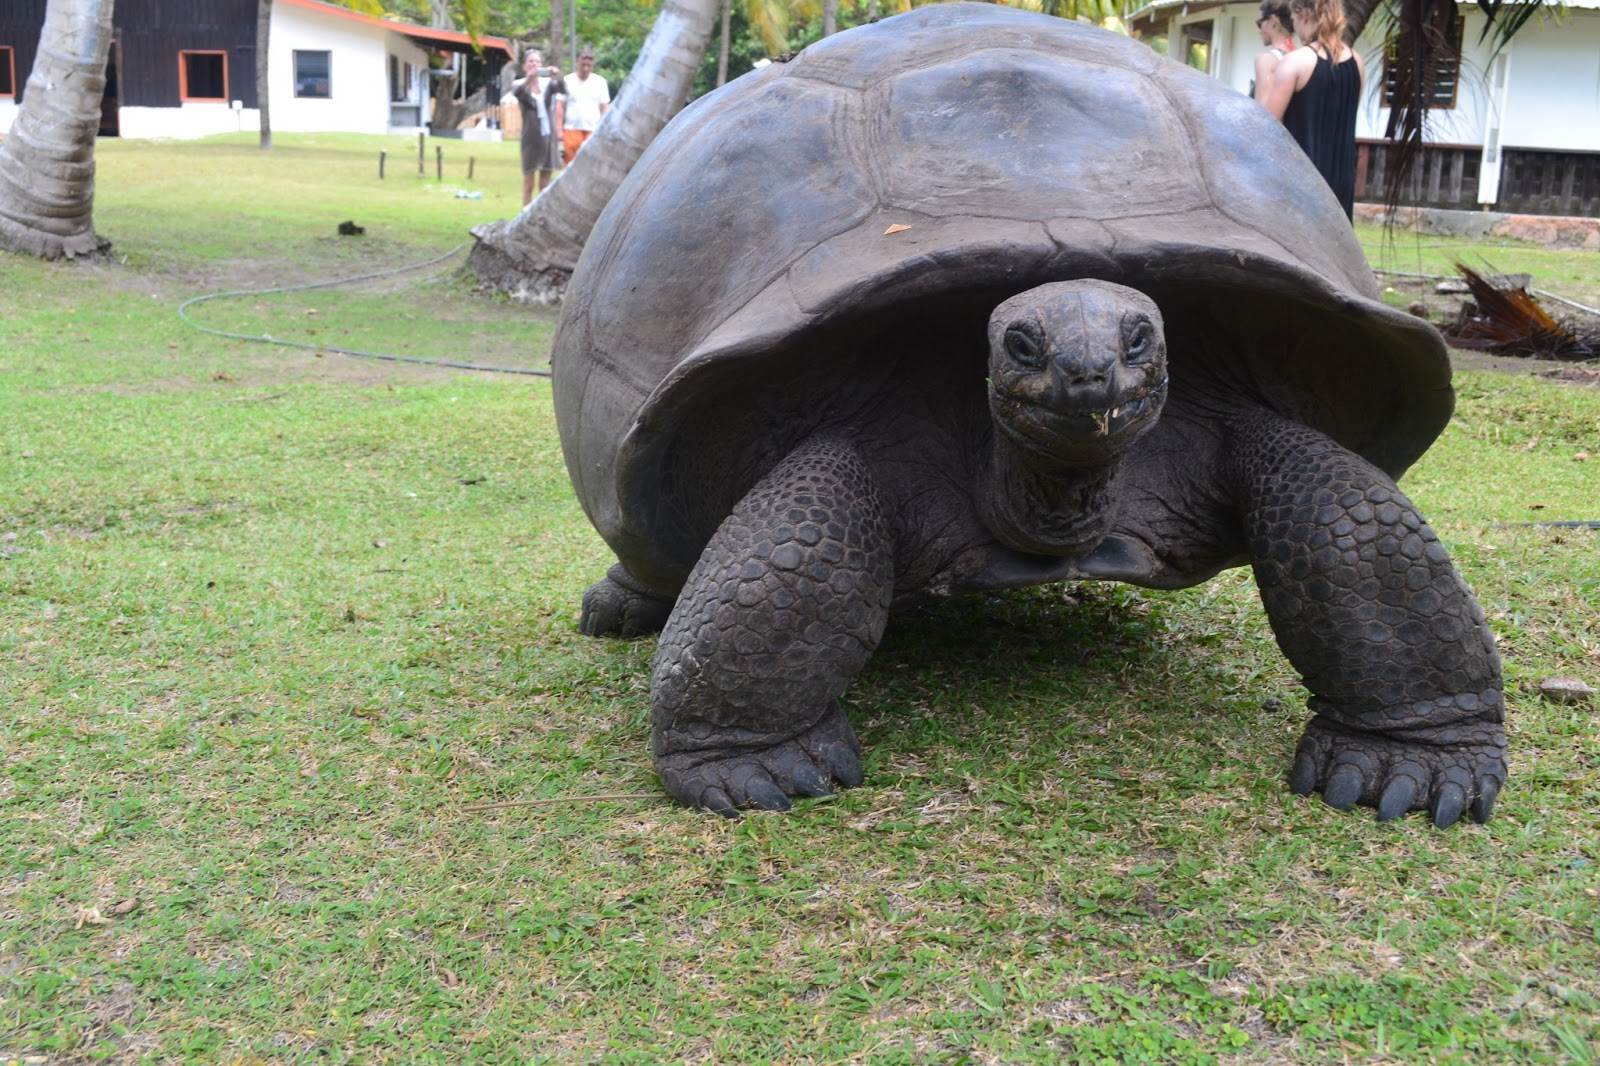 Giant Tortoise on Curious island